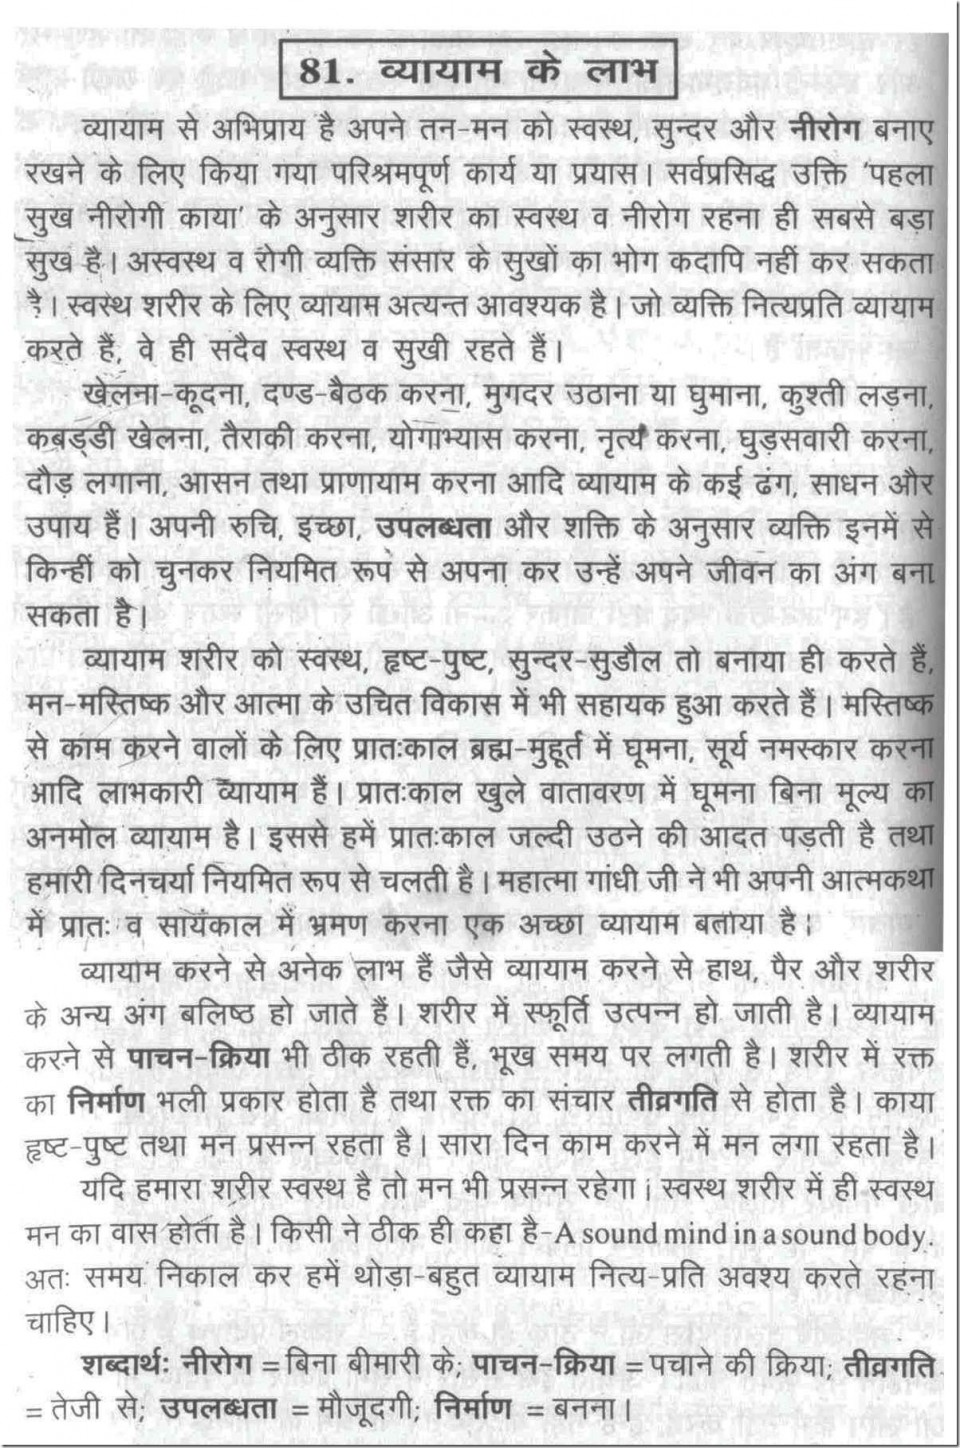 011 2563478896 Essay On Health And Fitness Through Food Good Habits In Hindi Exceptional Habit 960